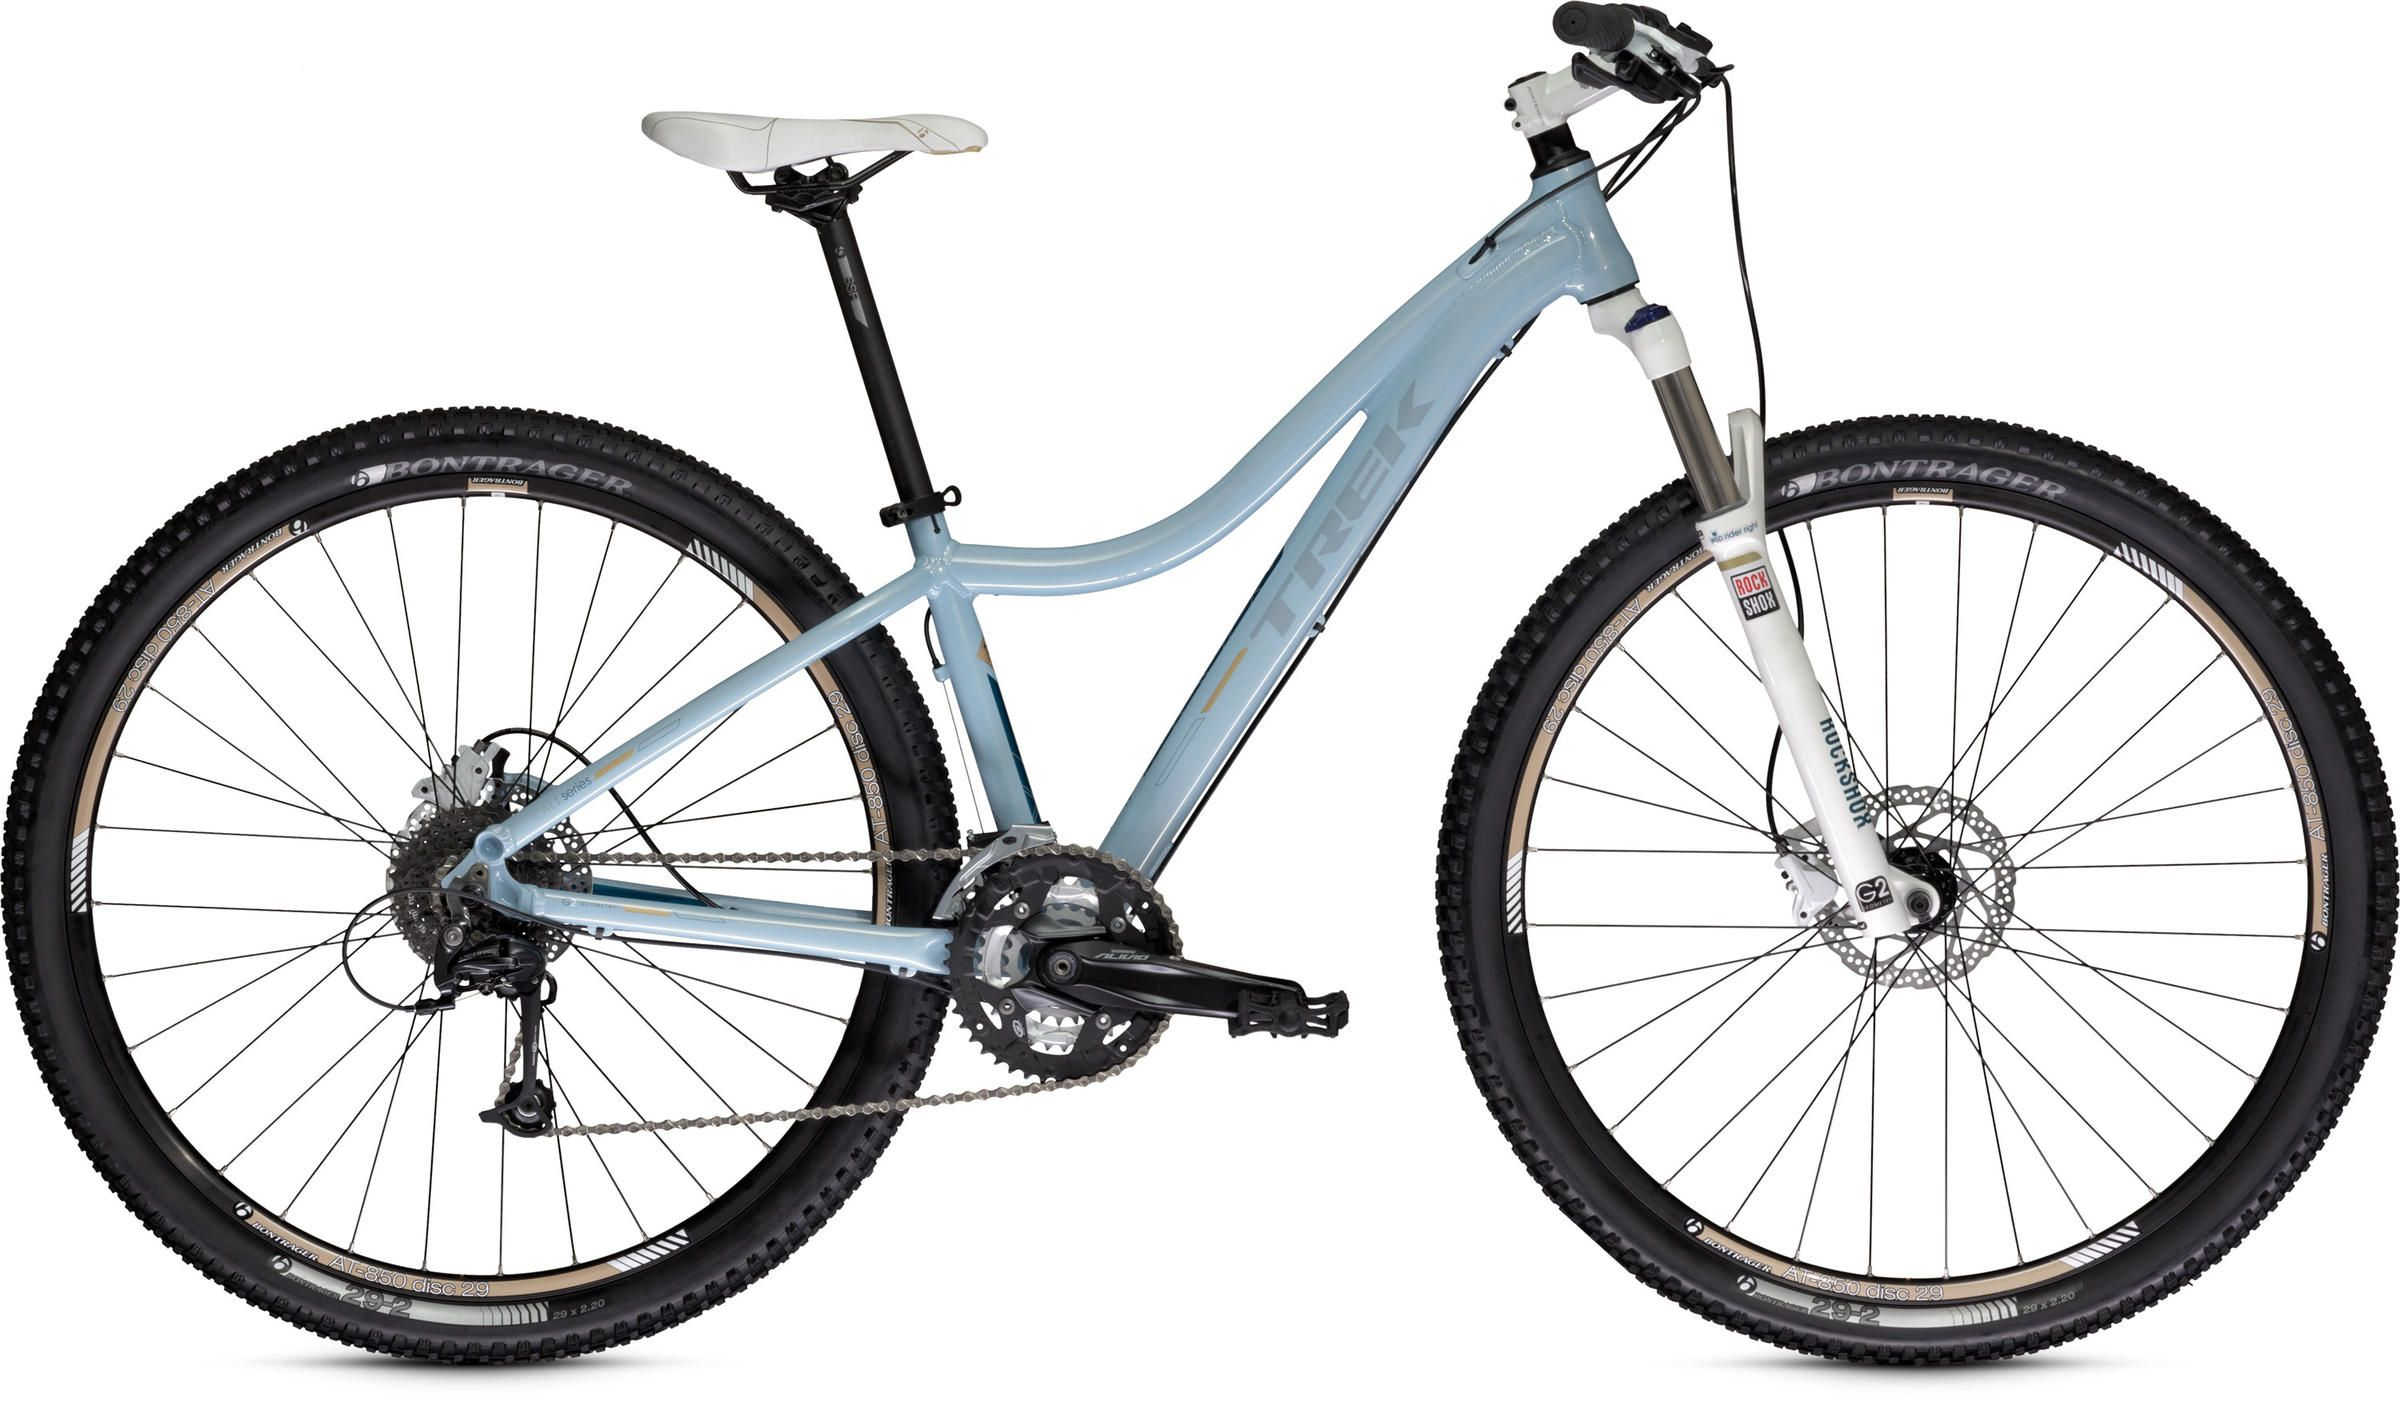 Compare Trek Bikes The Trek Cali S One ride and